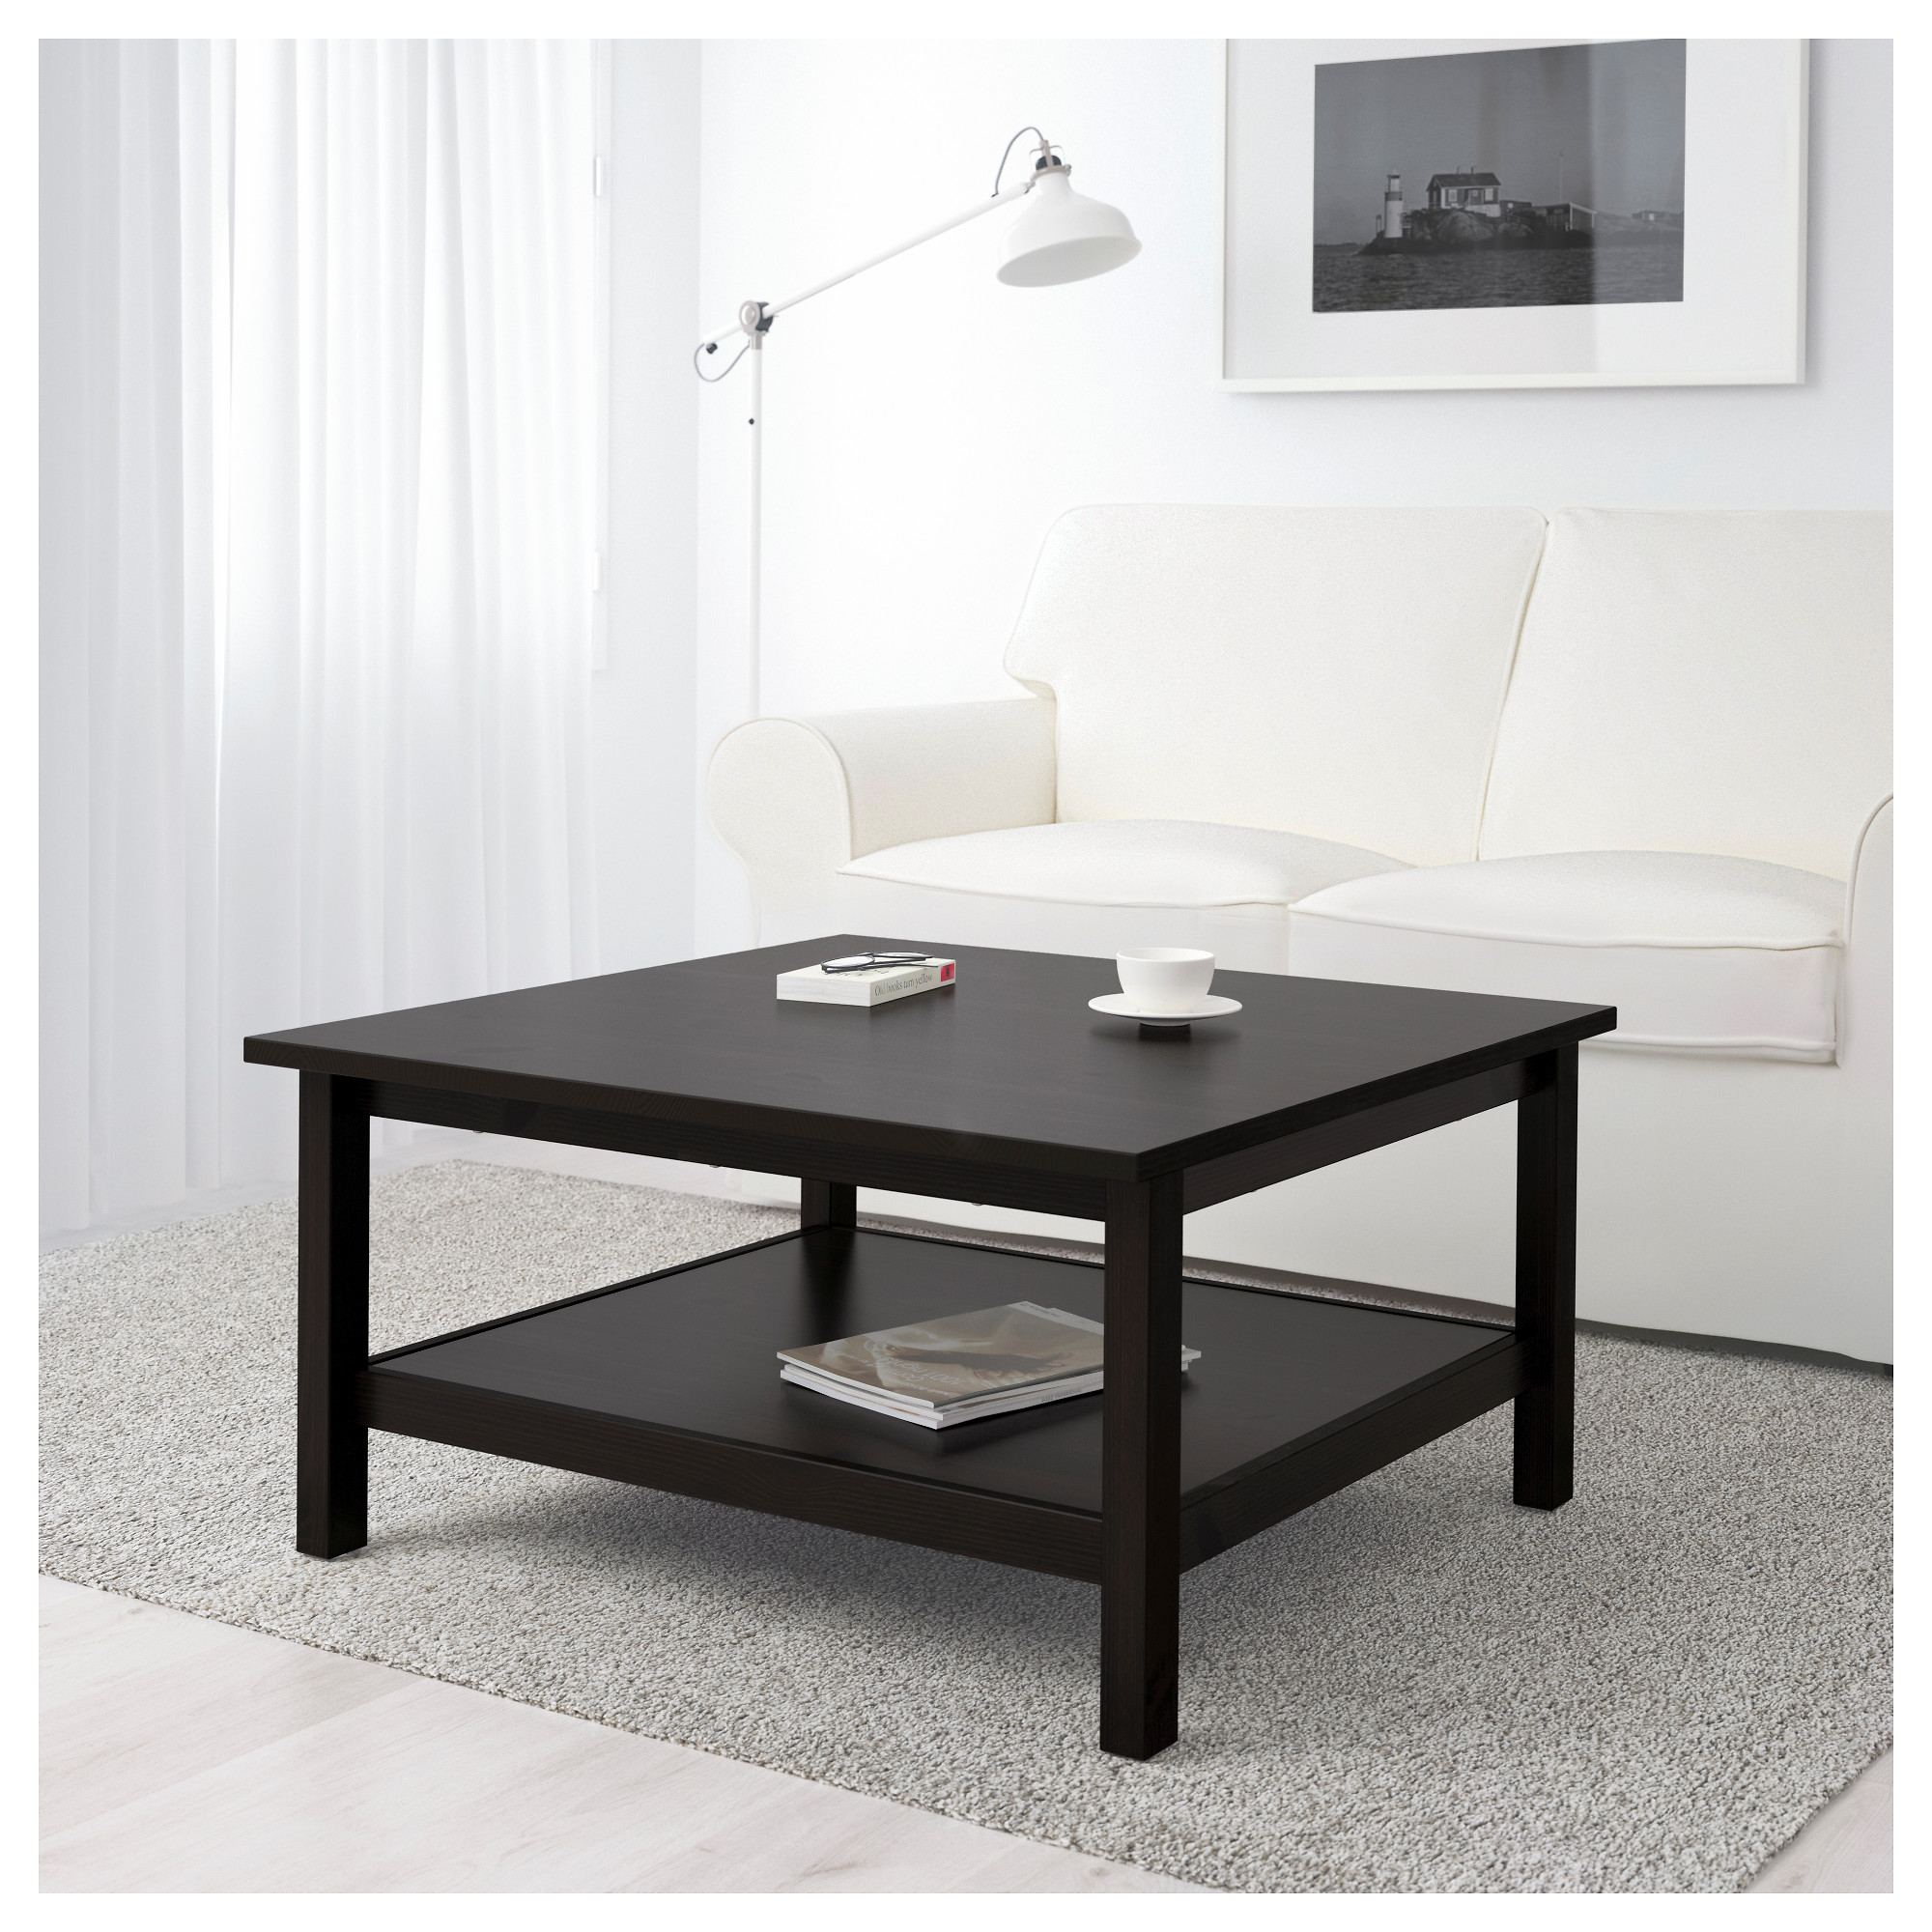 Ikea Lithuania Shop For Furniture Lighting Home Accessories More